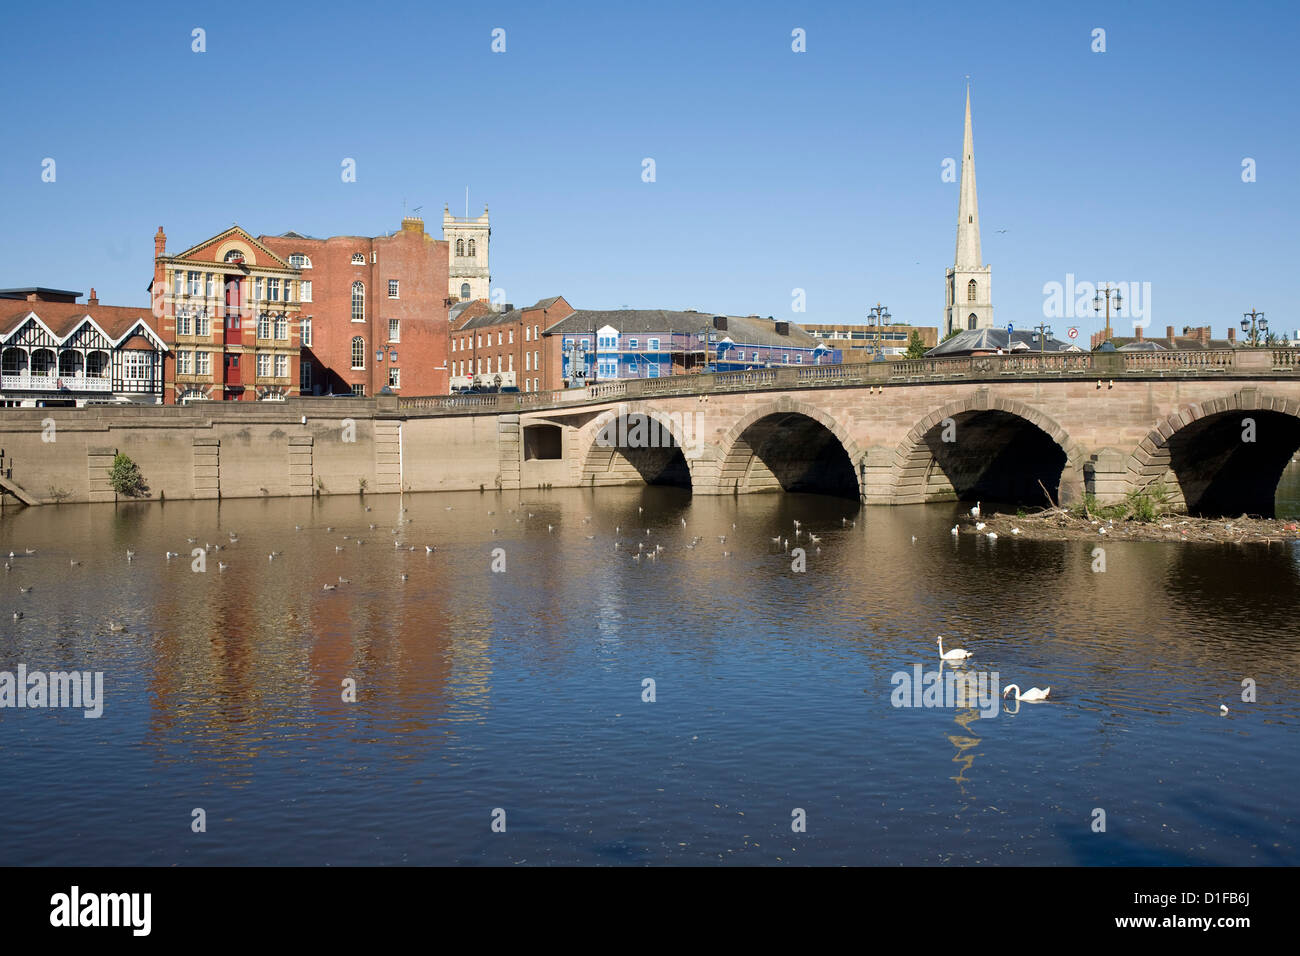 North Quay and bridge over River Severn, Worcester, Worcestershire, England, United Kingdom, Europe - Stock Image